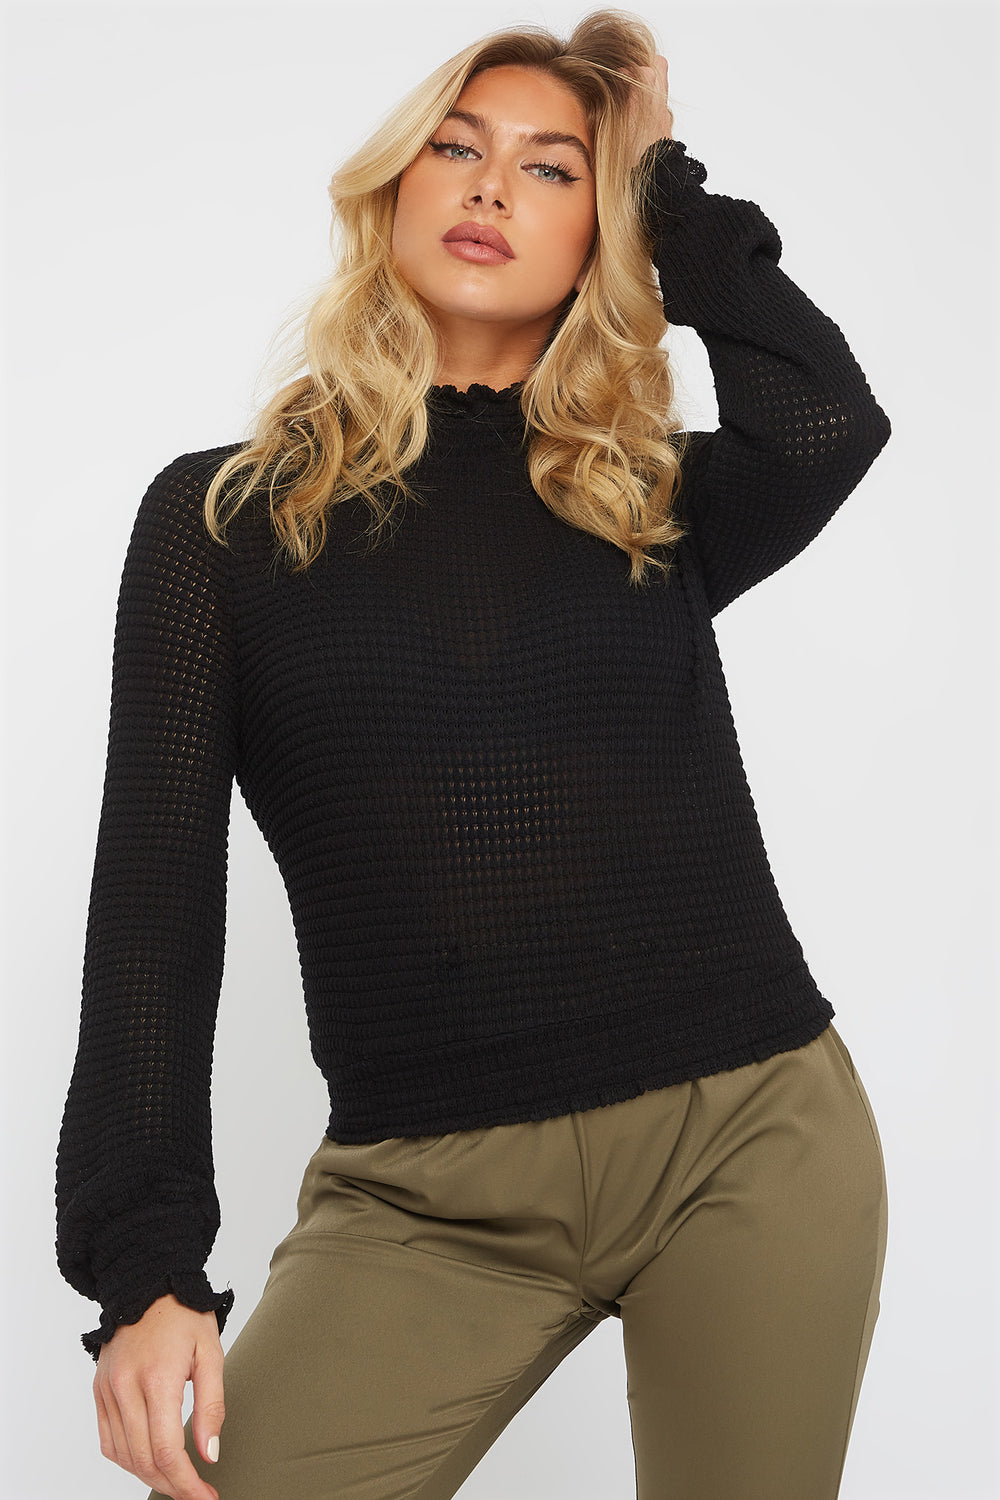 Soft Knit Smocked Turtleneck Long Sleeve Black